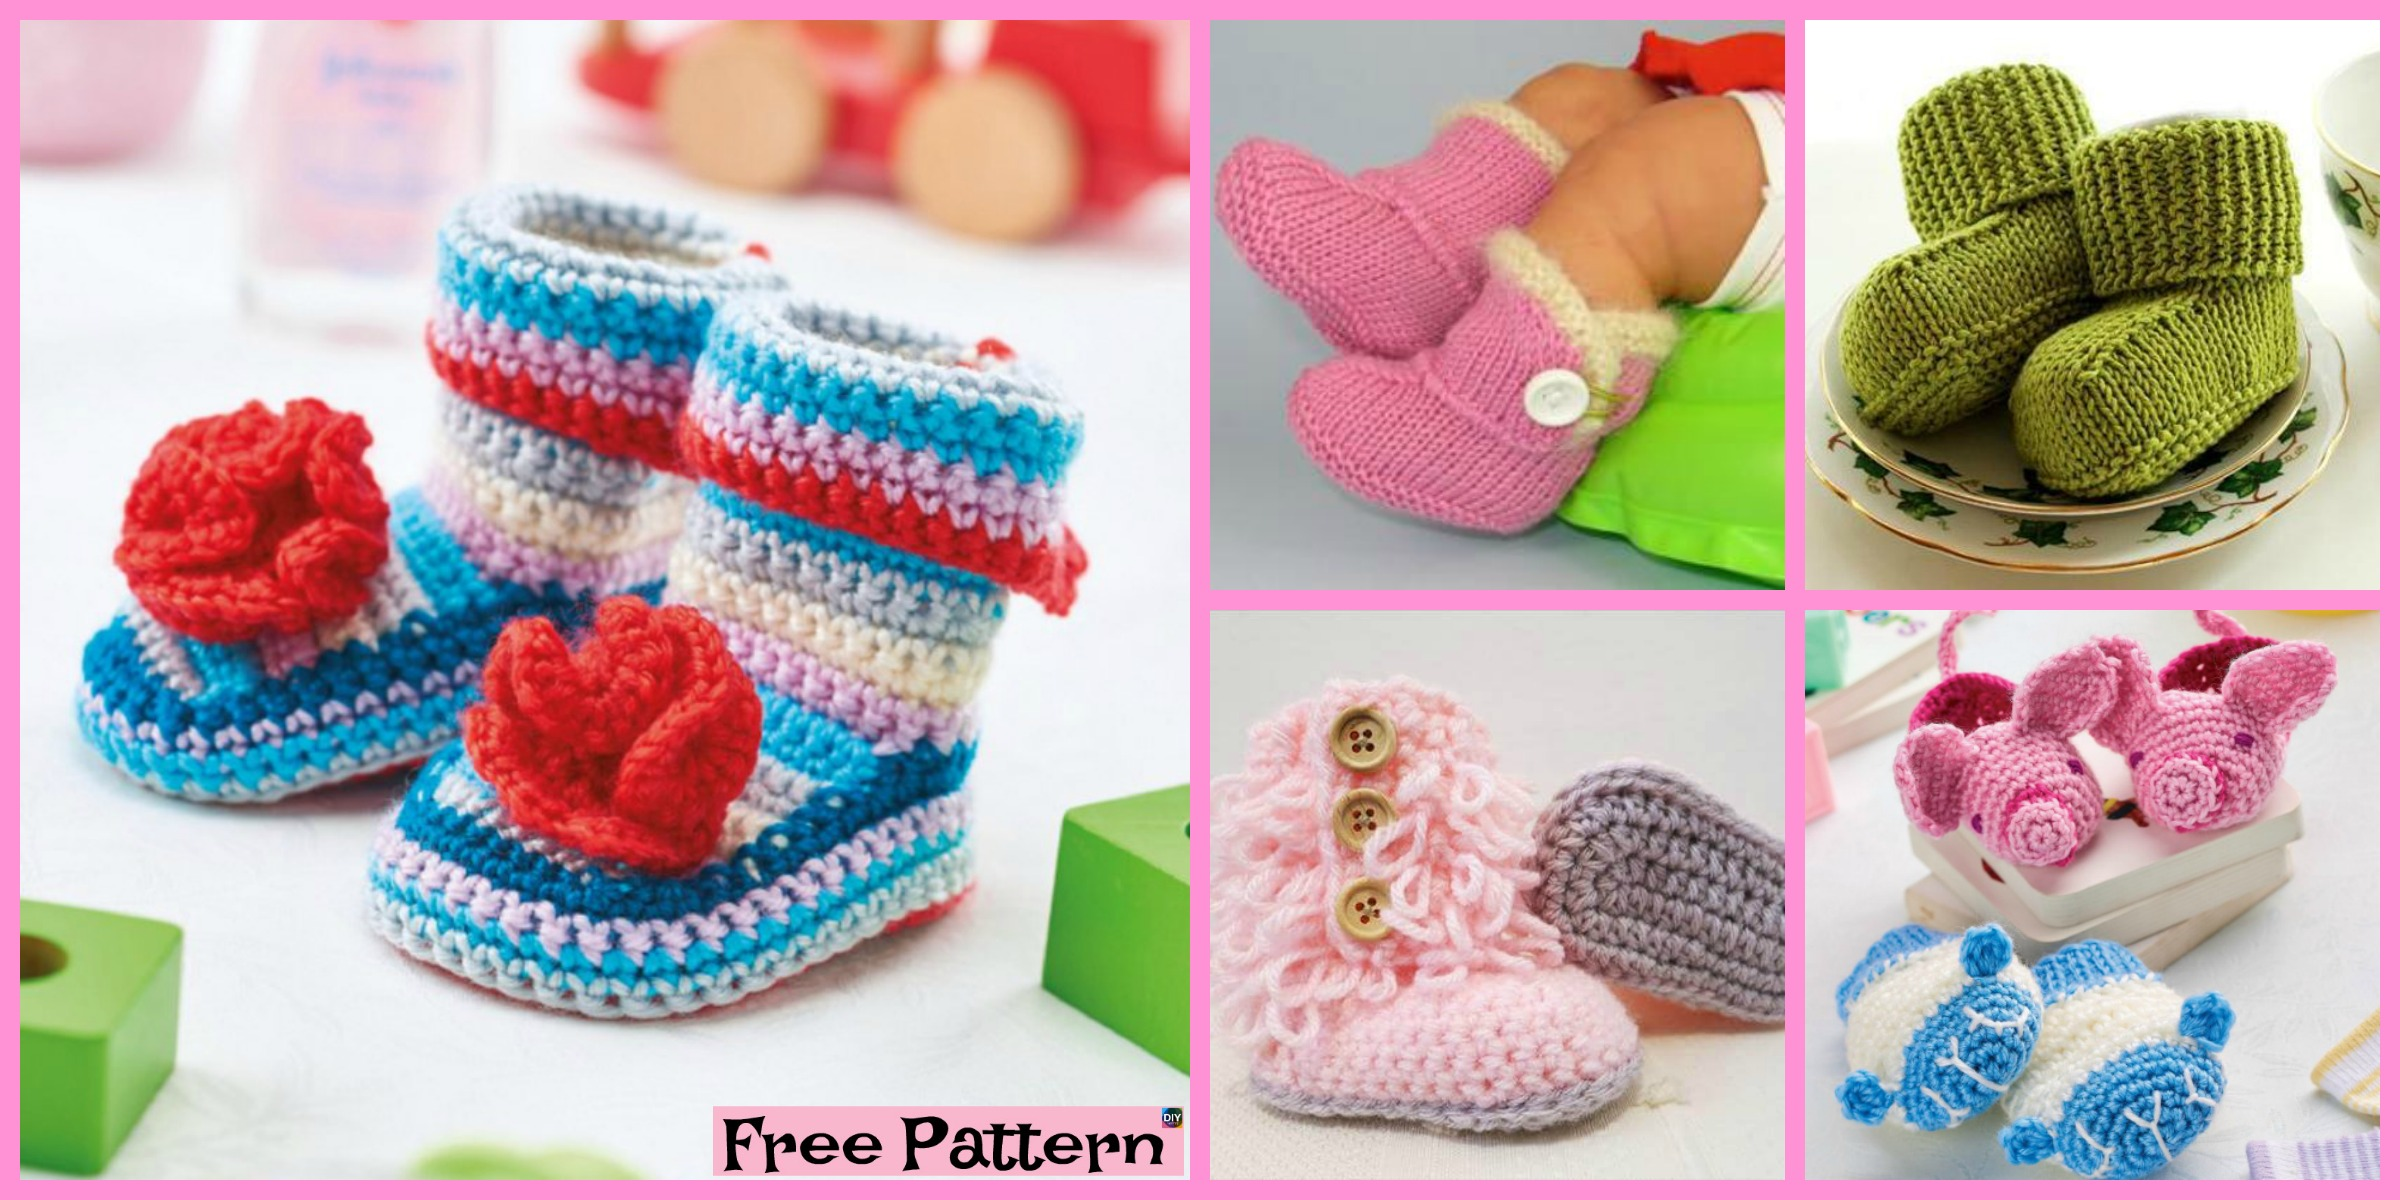 8 Crochet Winter Baby Booties – Free Patterns